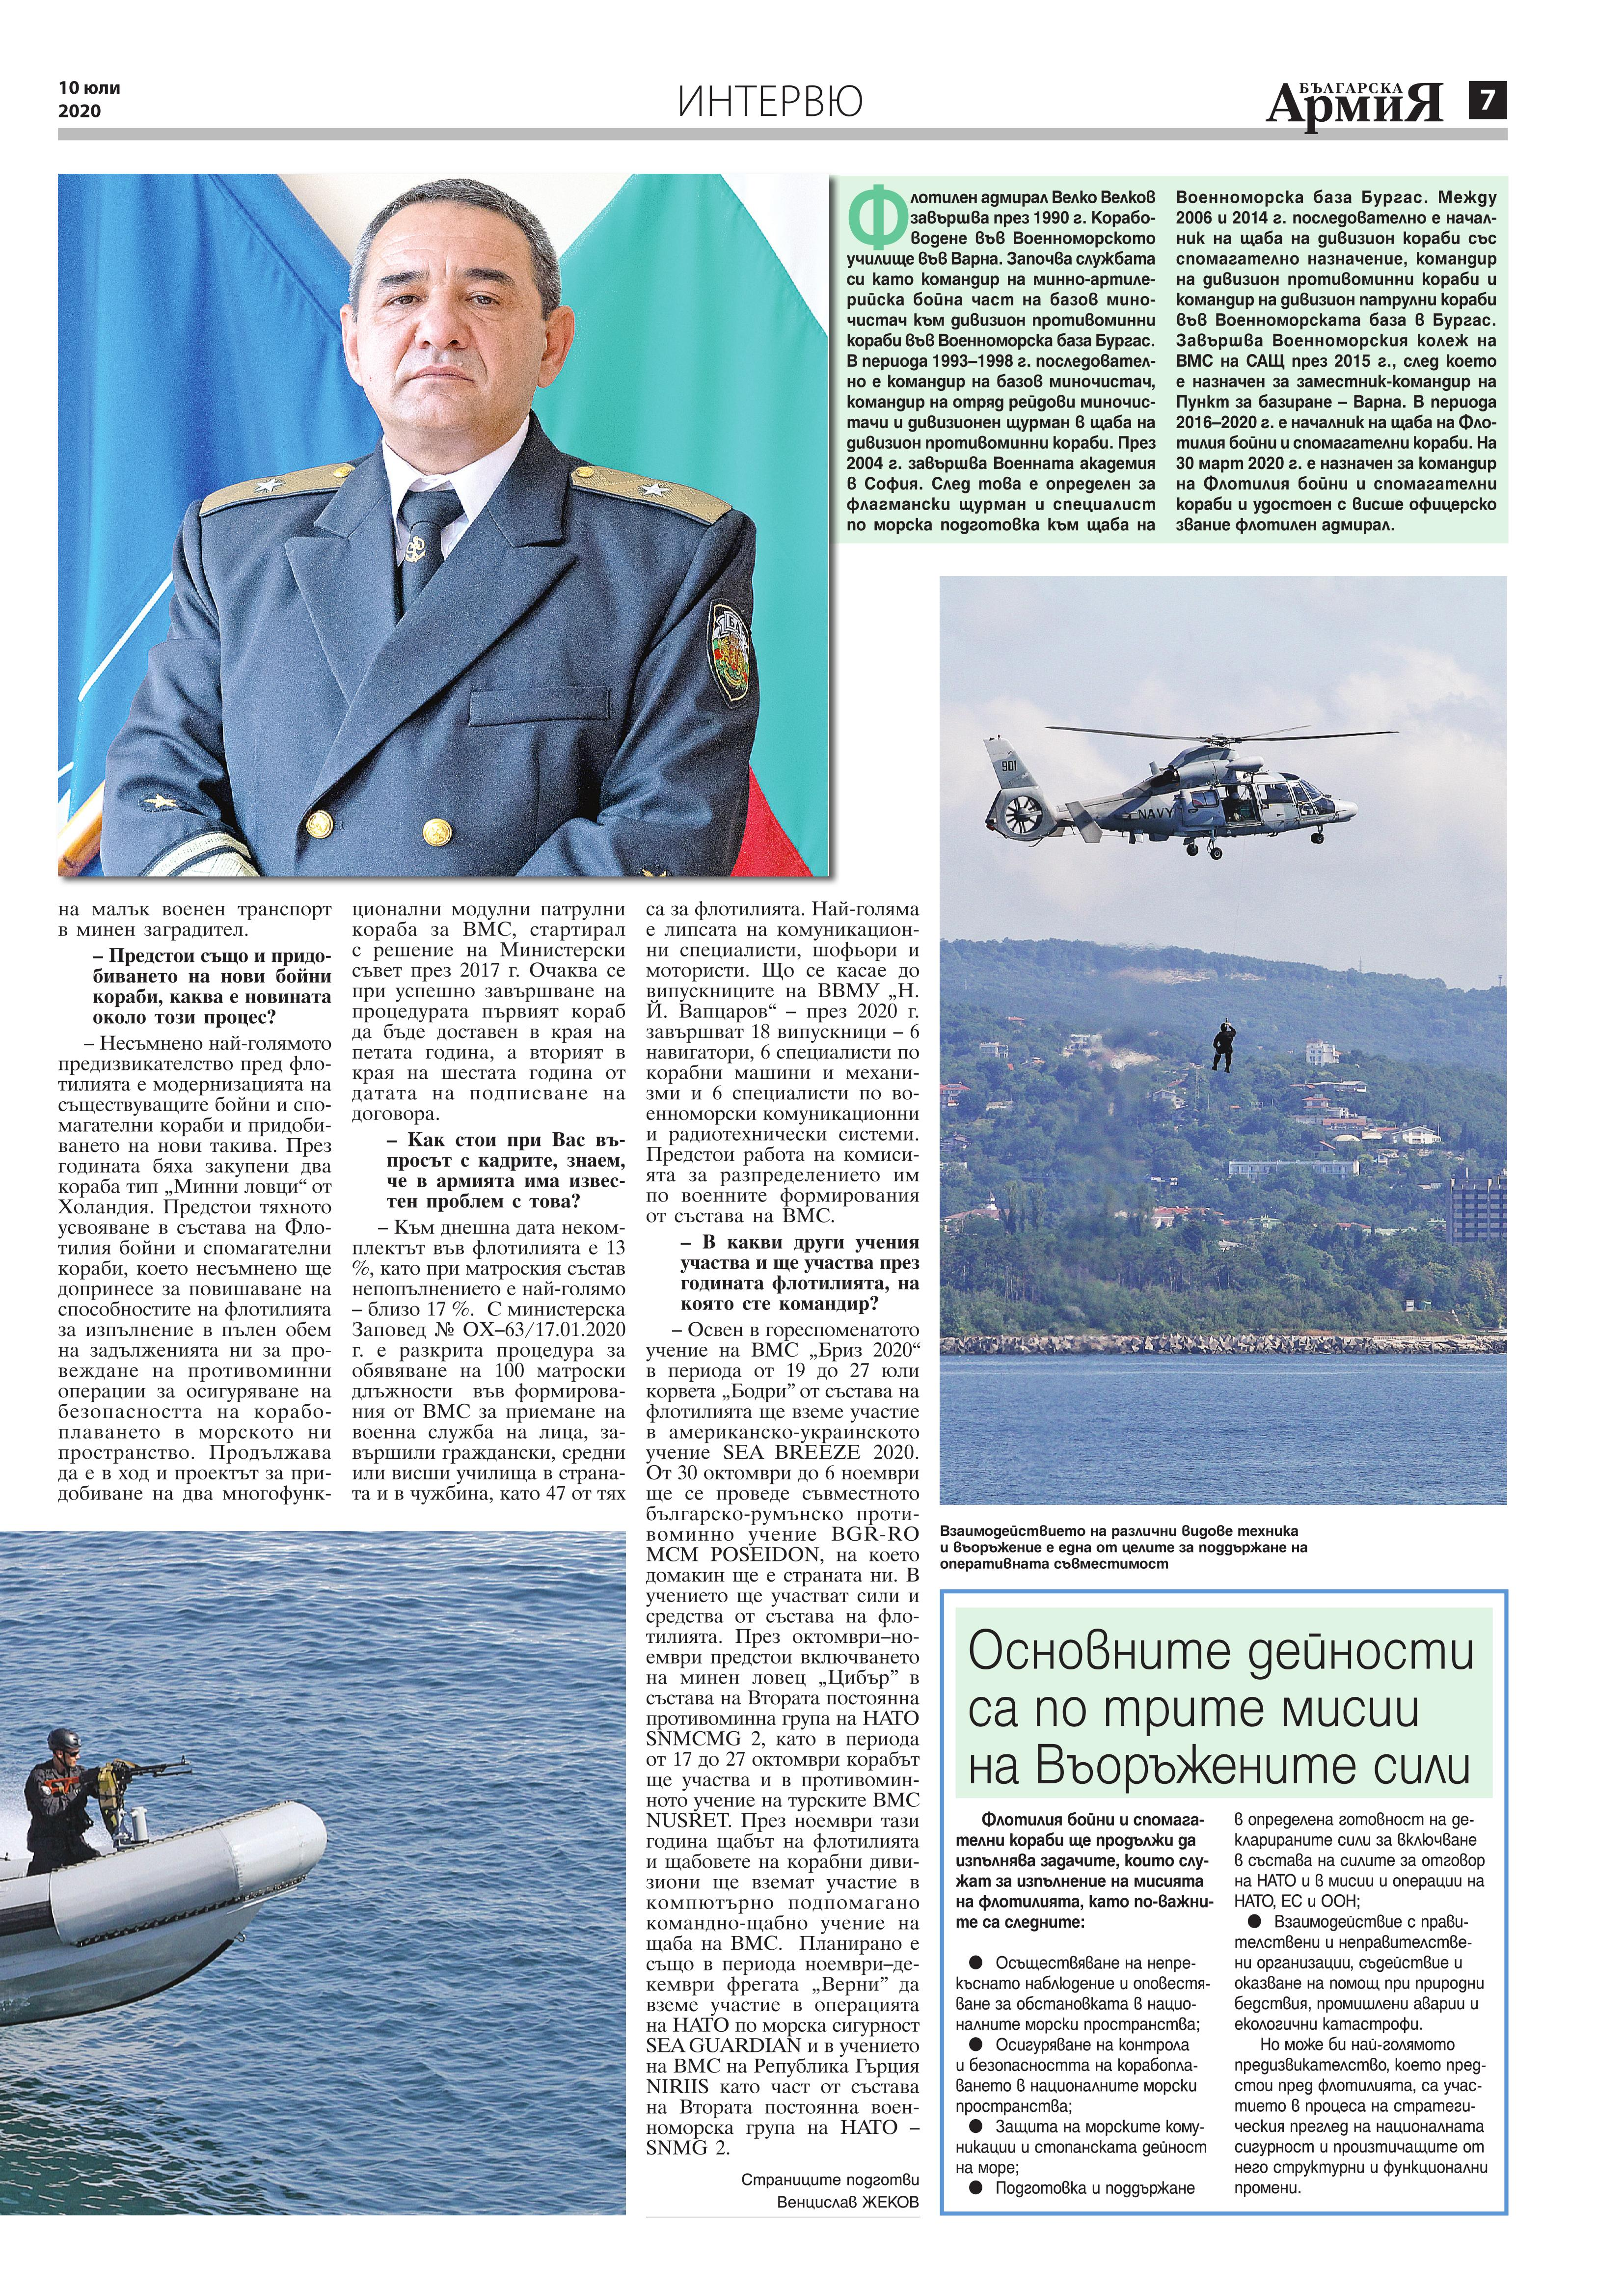 https://armymedia.bg/wp-content/uploads/2015/06/07.page1_-143.jpg